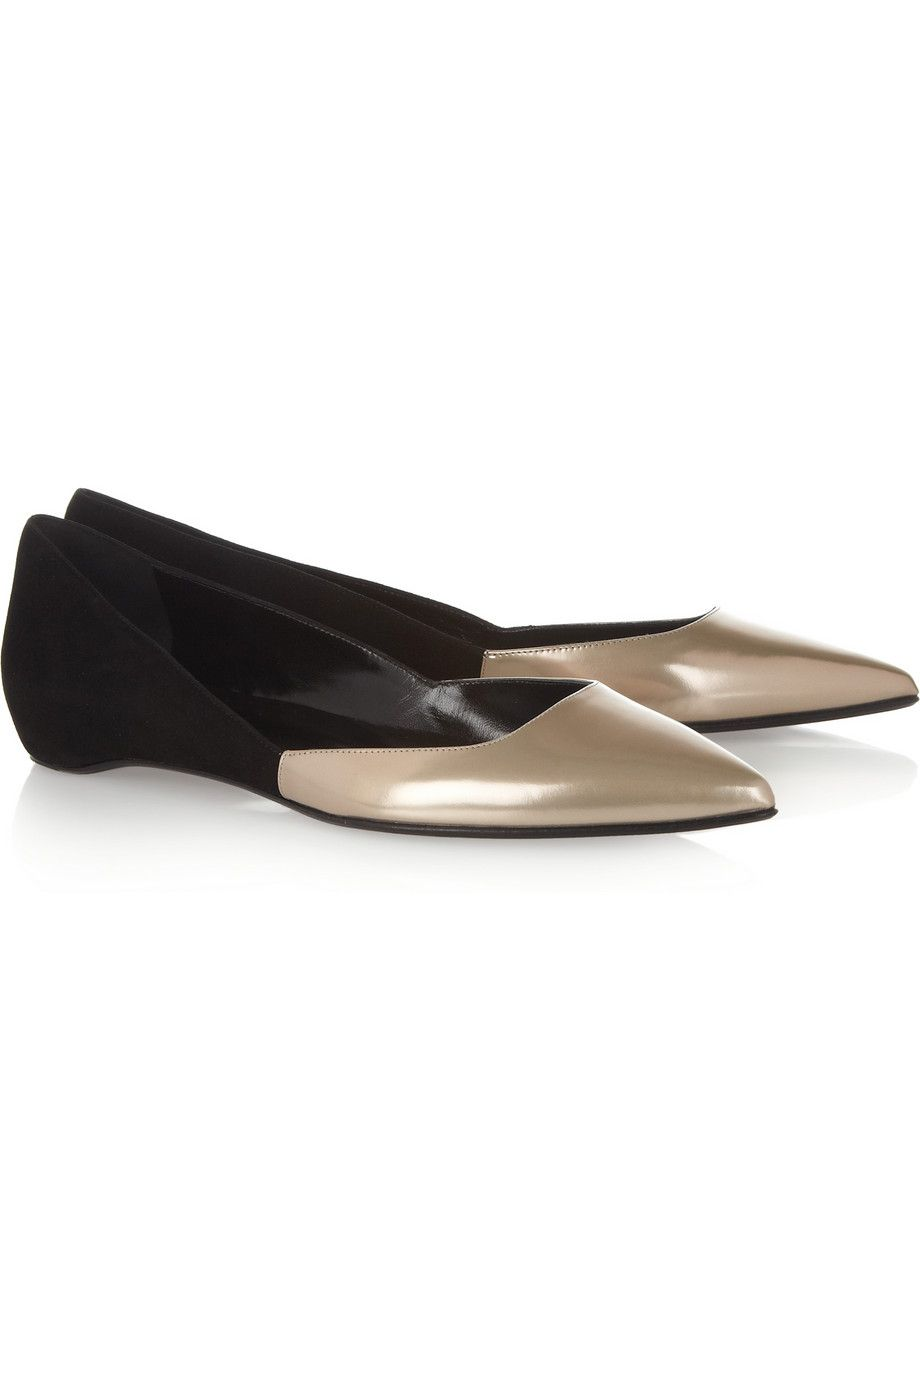 Pierre Hardy|Patent-leather and suede flats